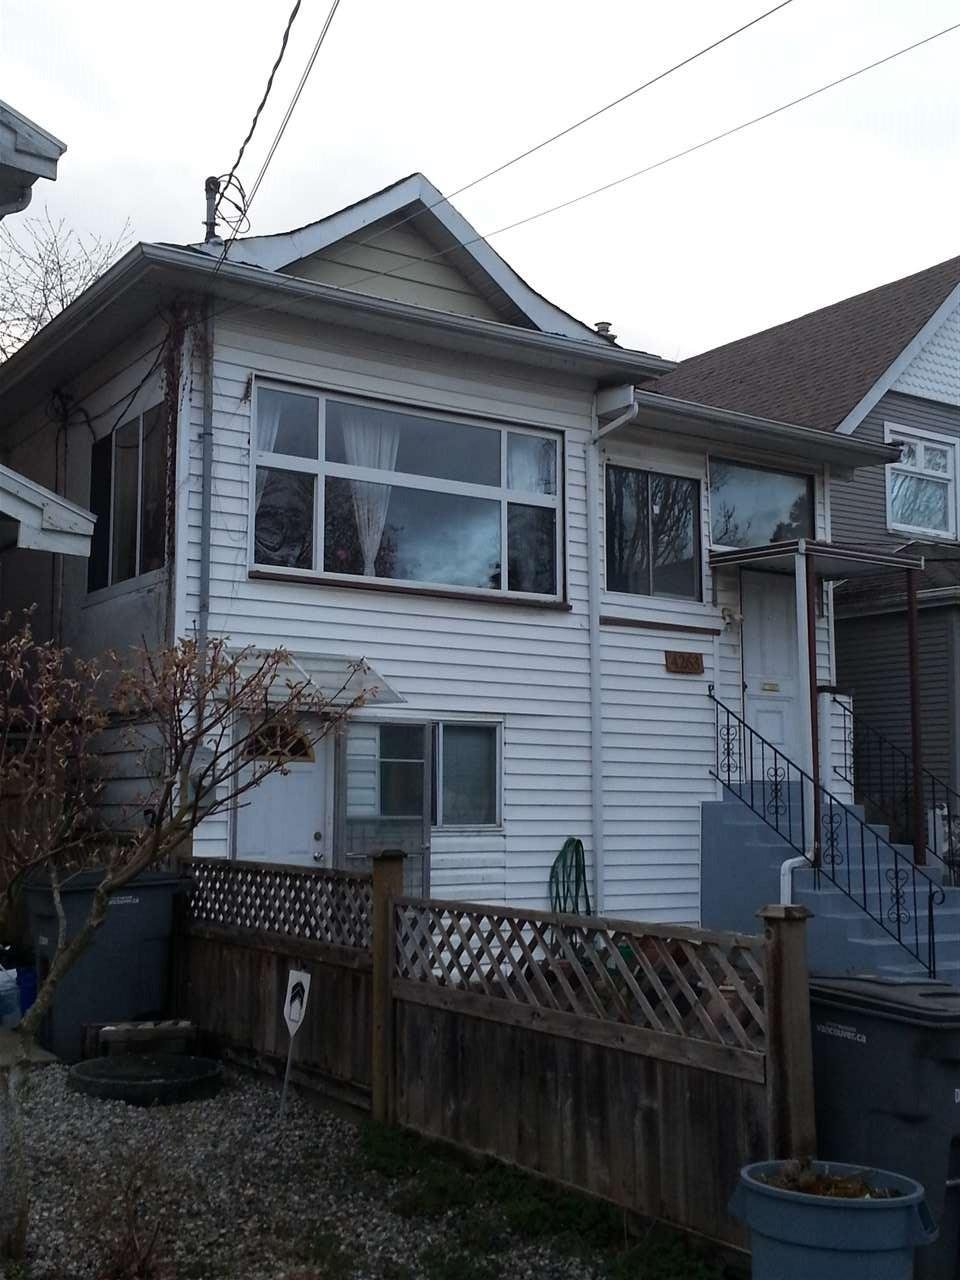 R2155625 - 4263 QUEBEC STREET, Main, Vancouver, BC - House/Single Family